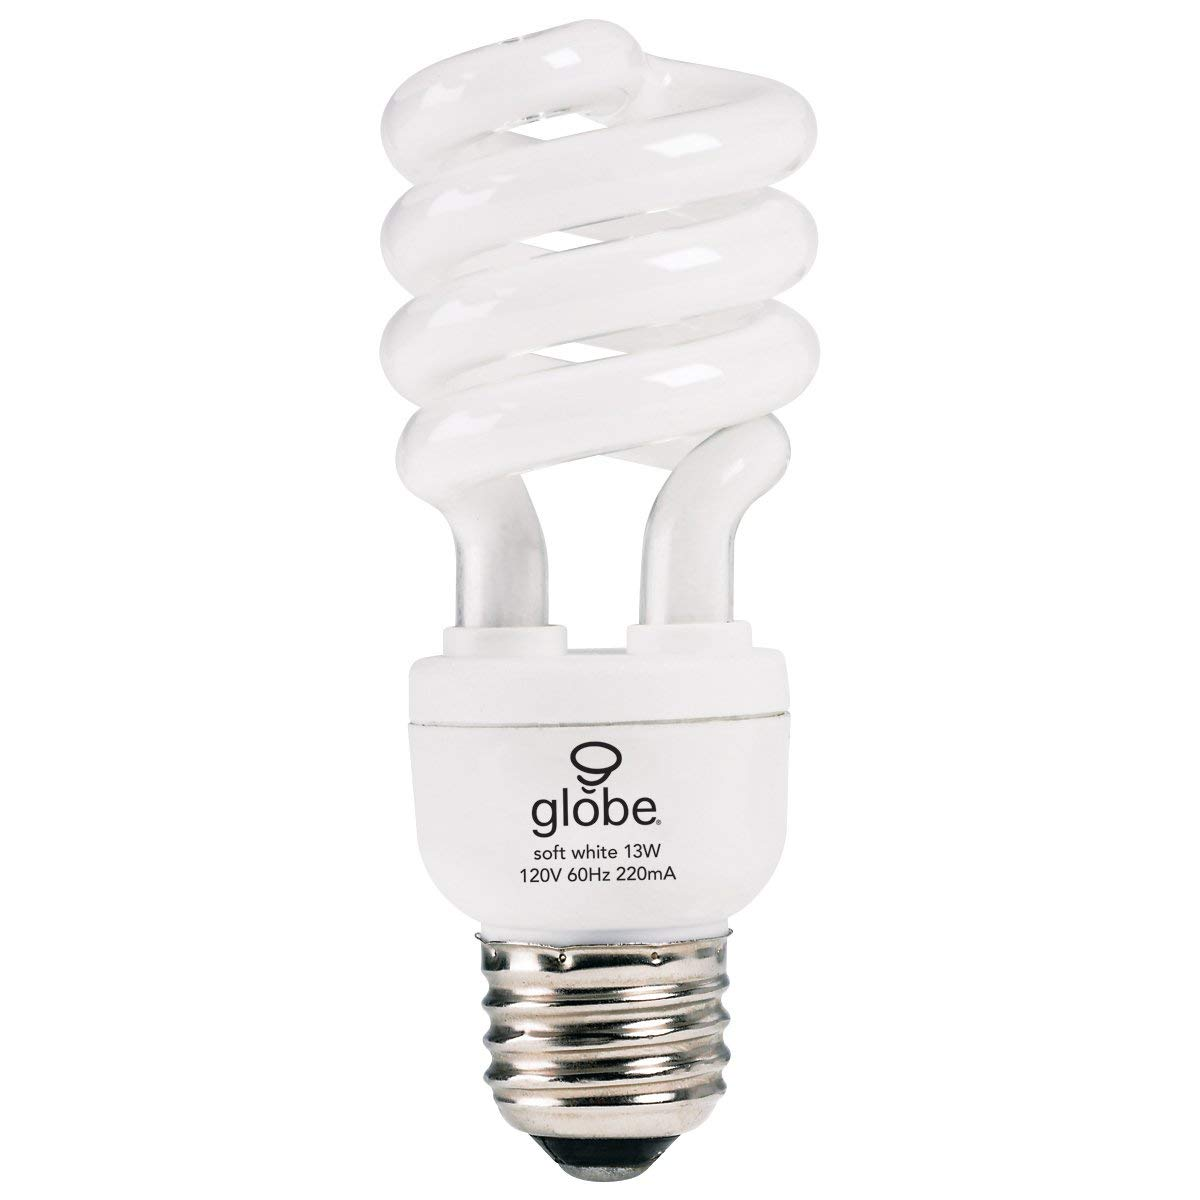 d743dbed424 Globe Electric 01321 60 Watt Vintage Edison S60 Squirrel Cage Incandescent  Filament Light Bulb